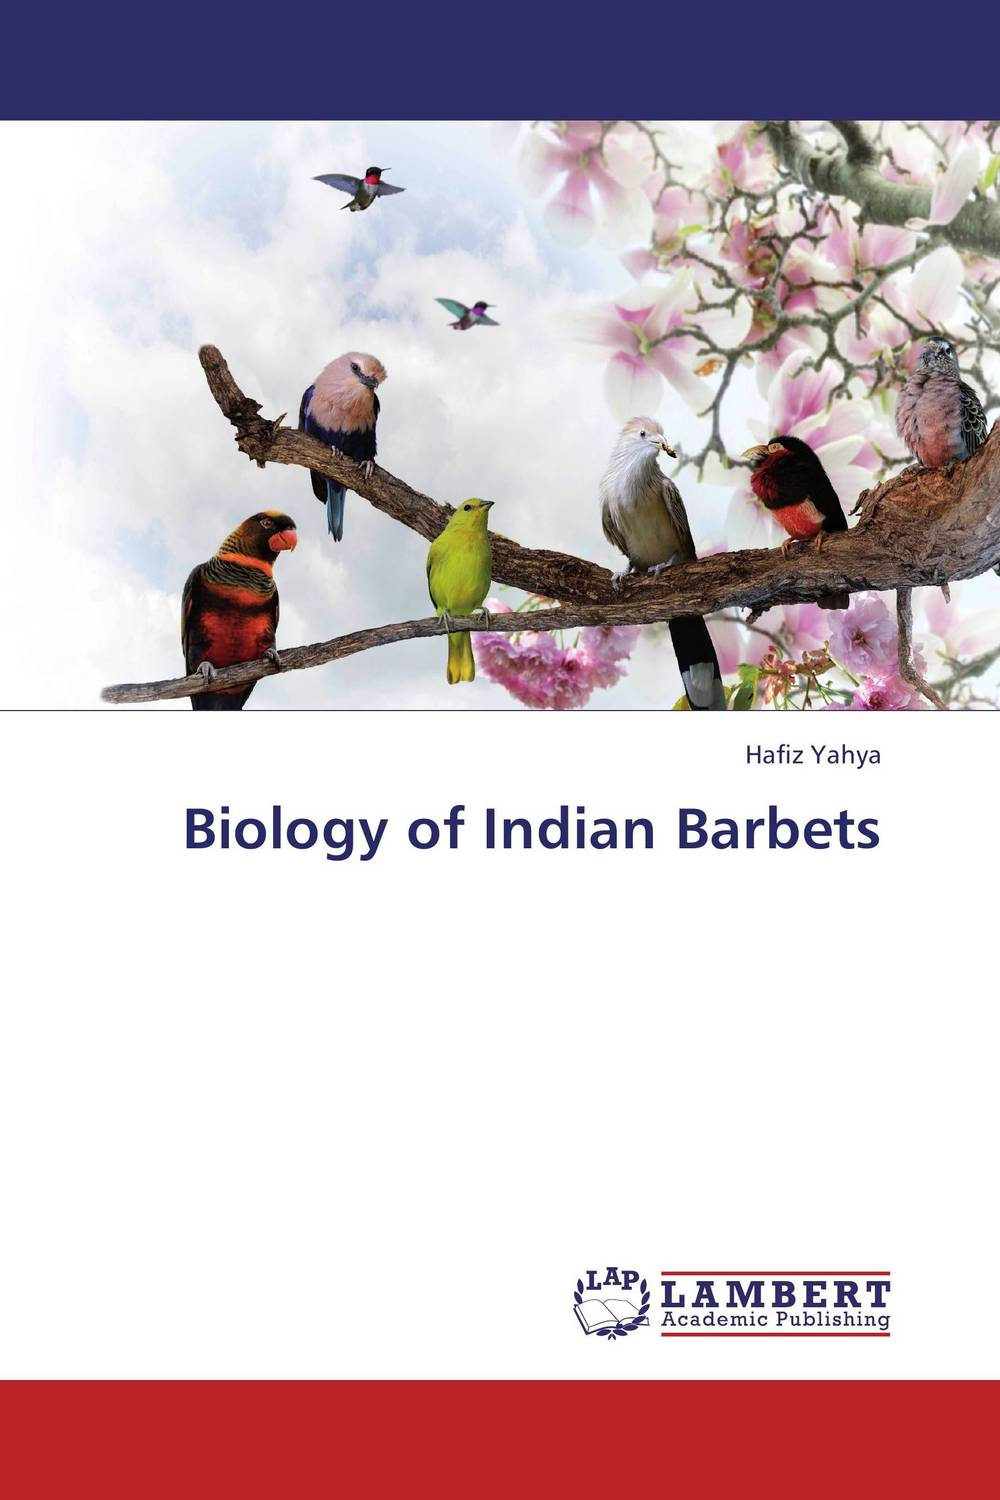 Biology of Indian Barbets